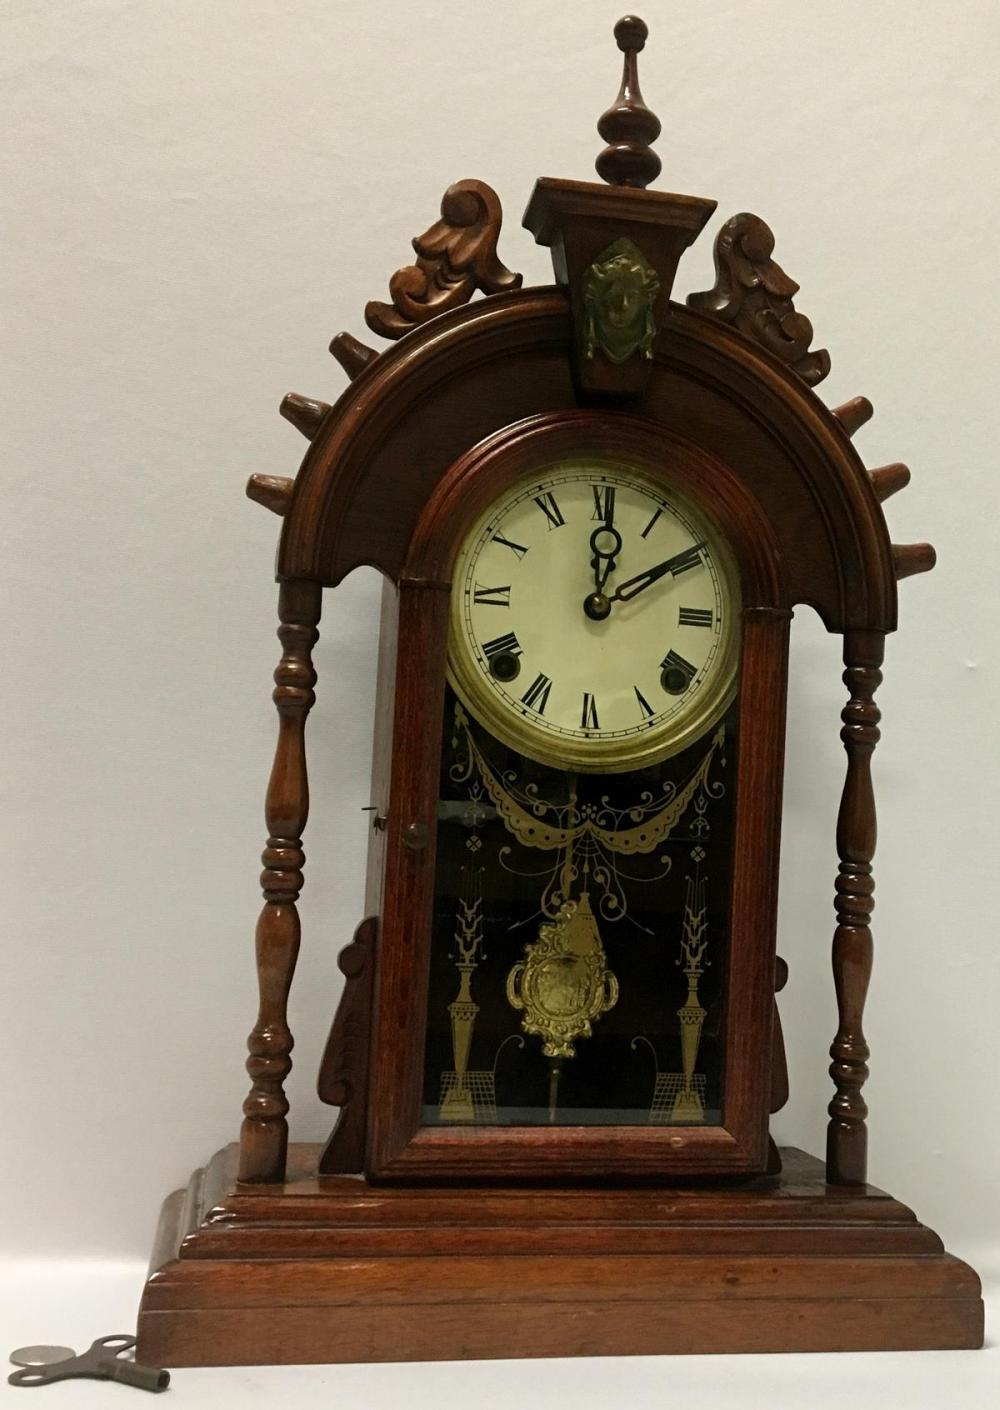 Antique 19th Century Walnut Reverse Painted Parlor Mantle Clock w/ Columns, Wings and Finial